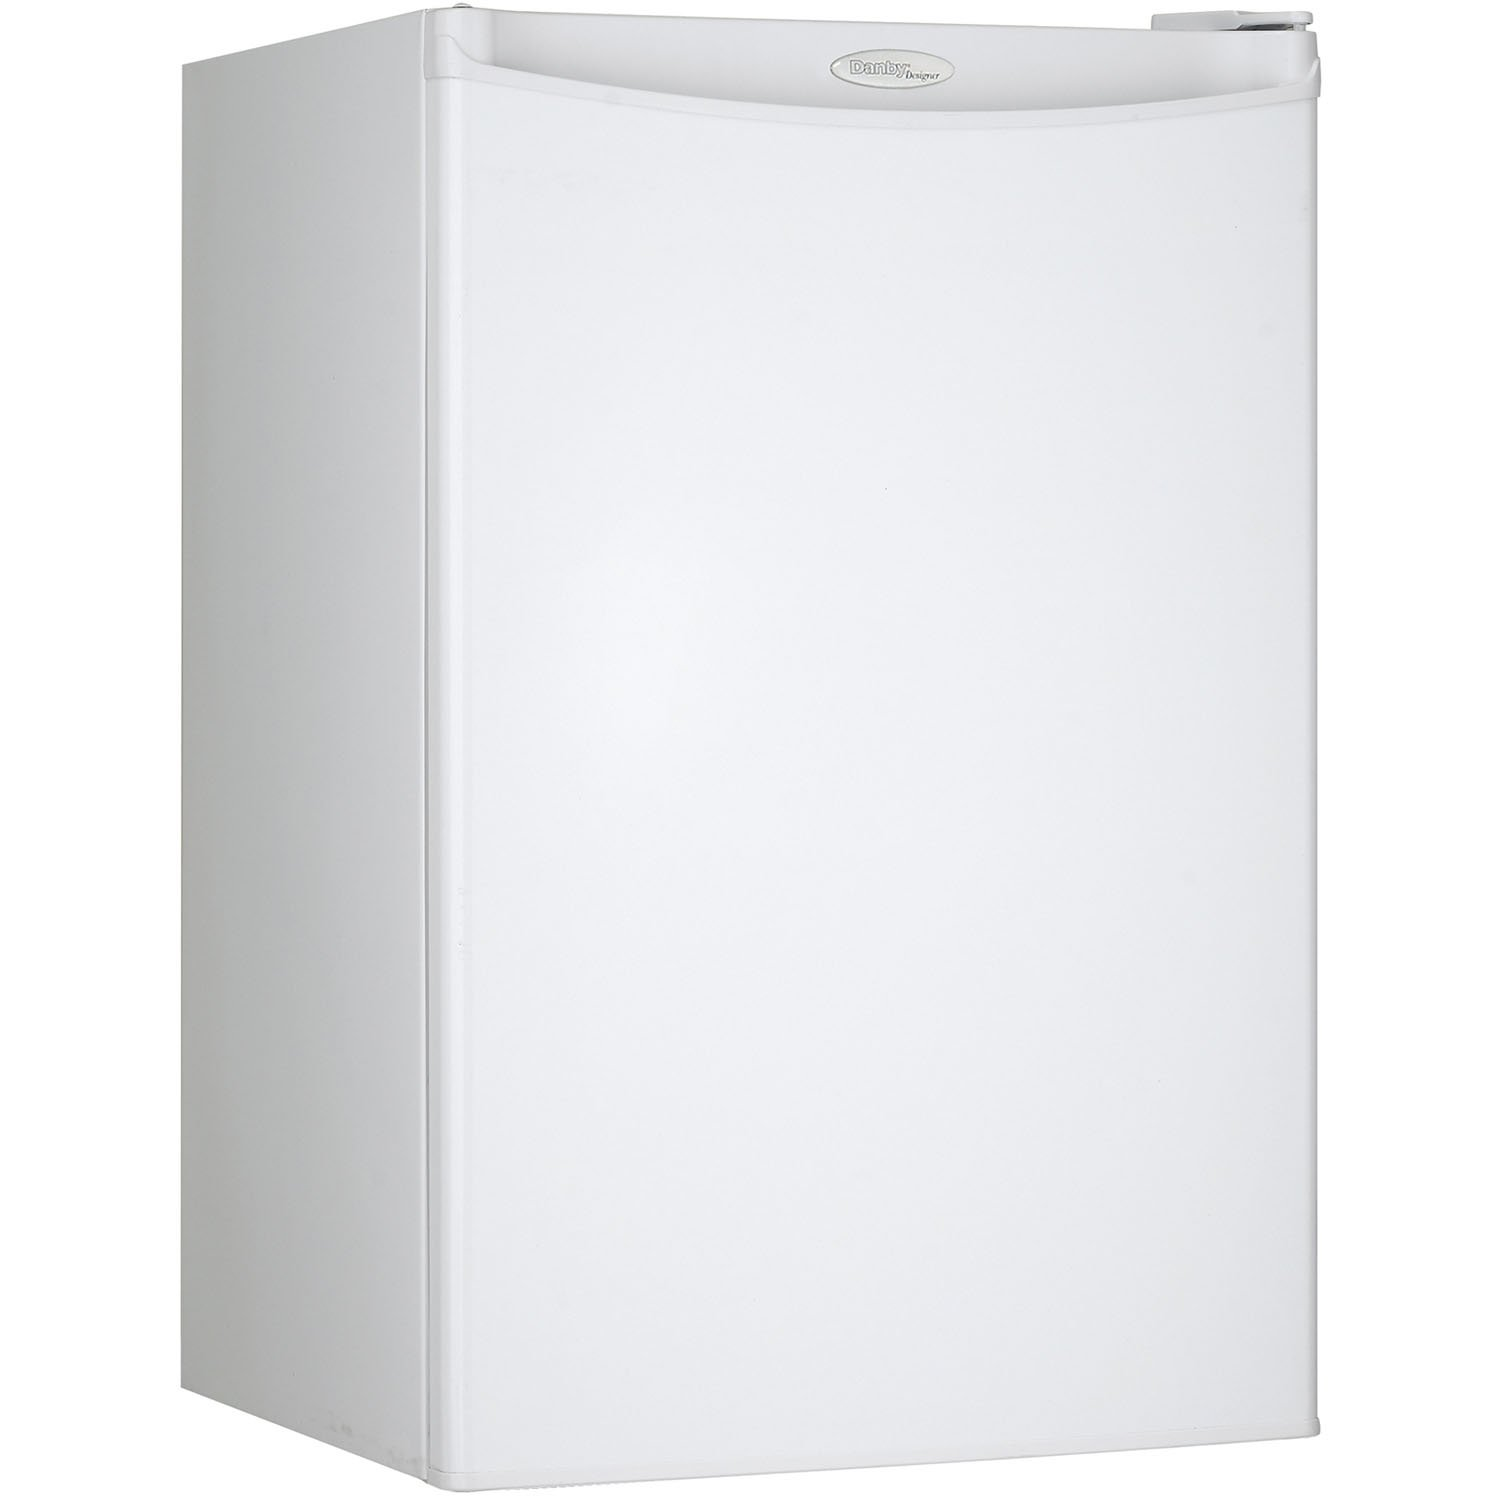 Danby Designer DCR044A2WDD-3 Compact Refrigerator,4.4-Cubic Feet, White